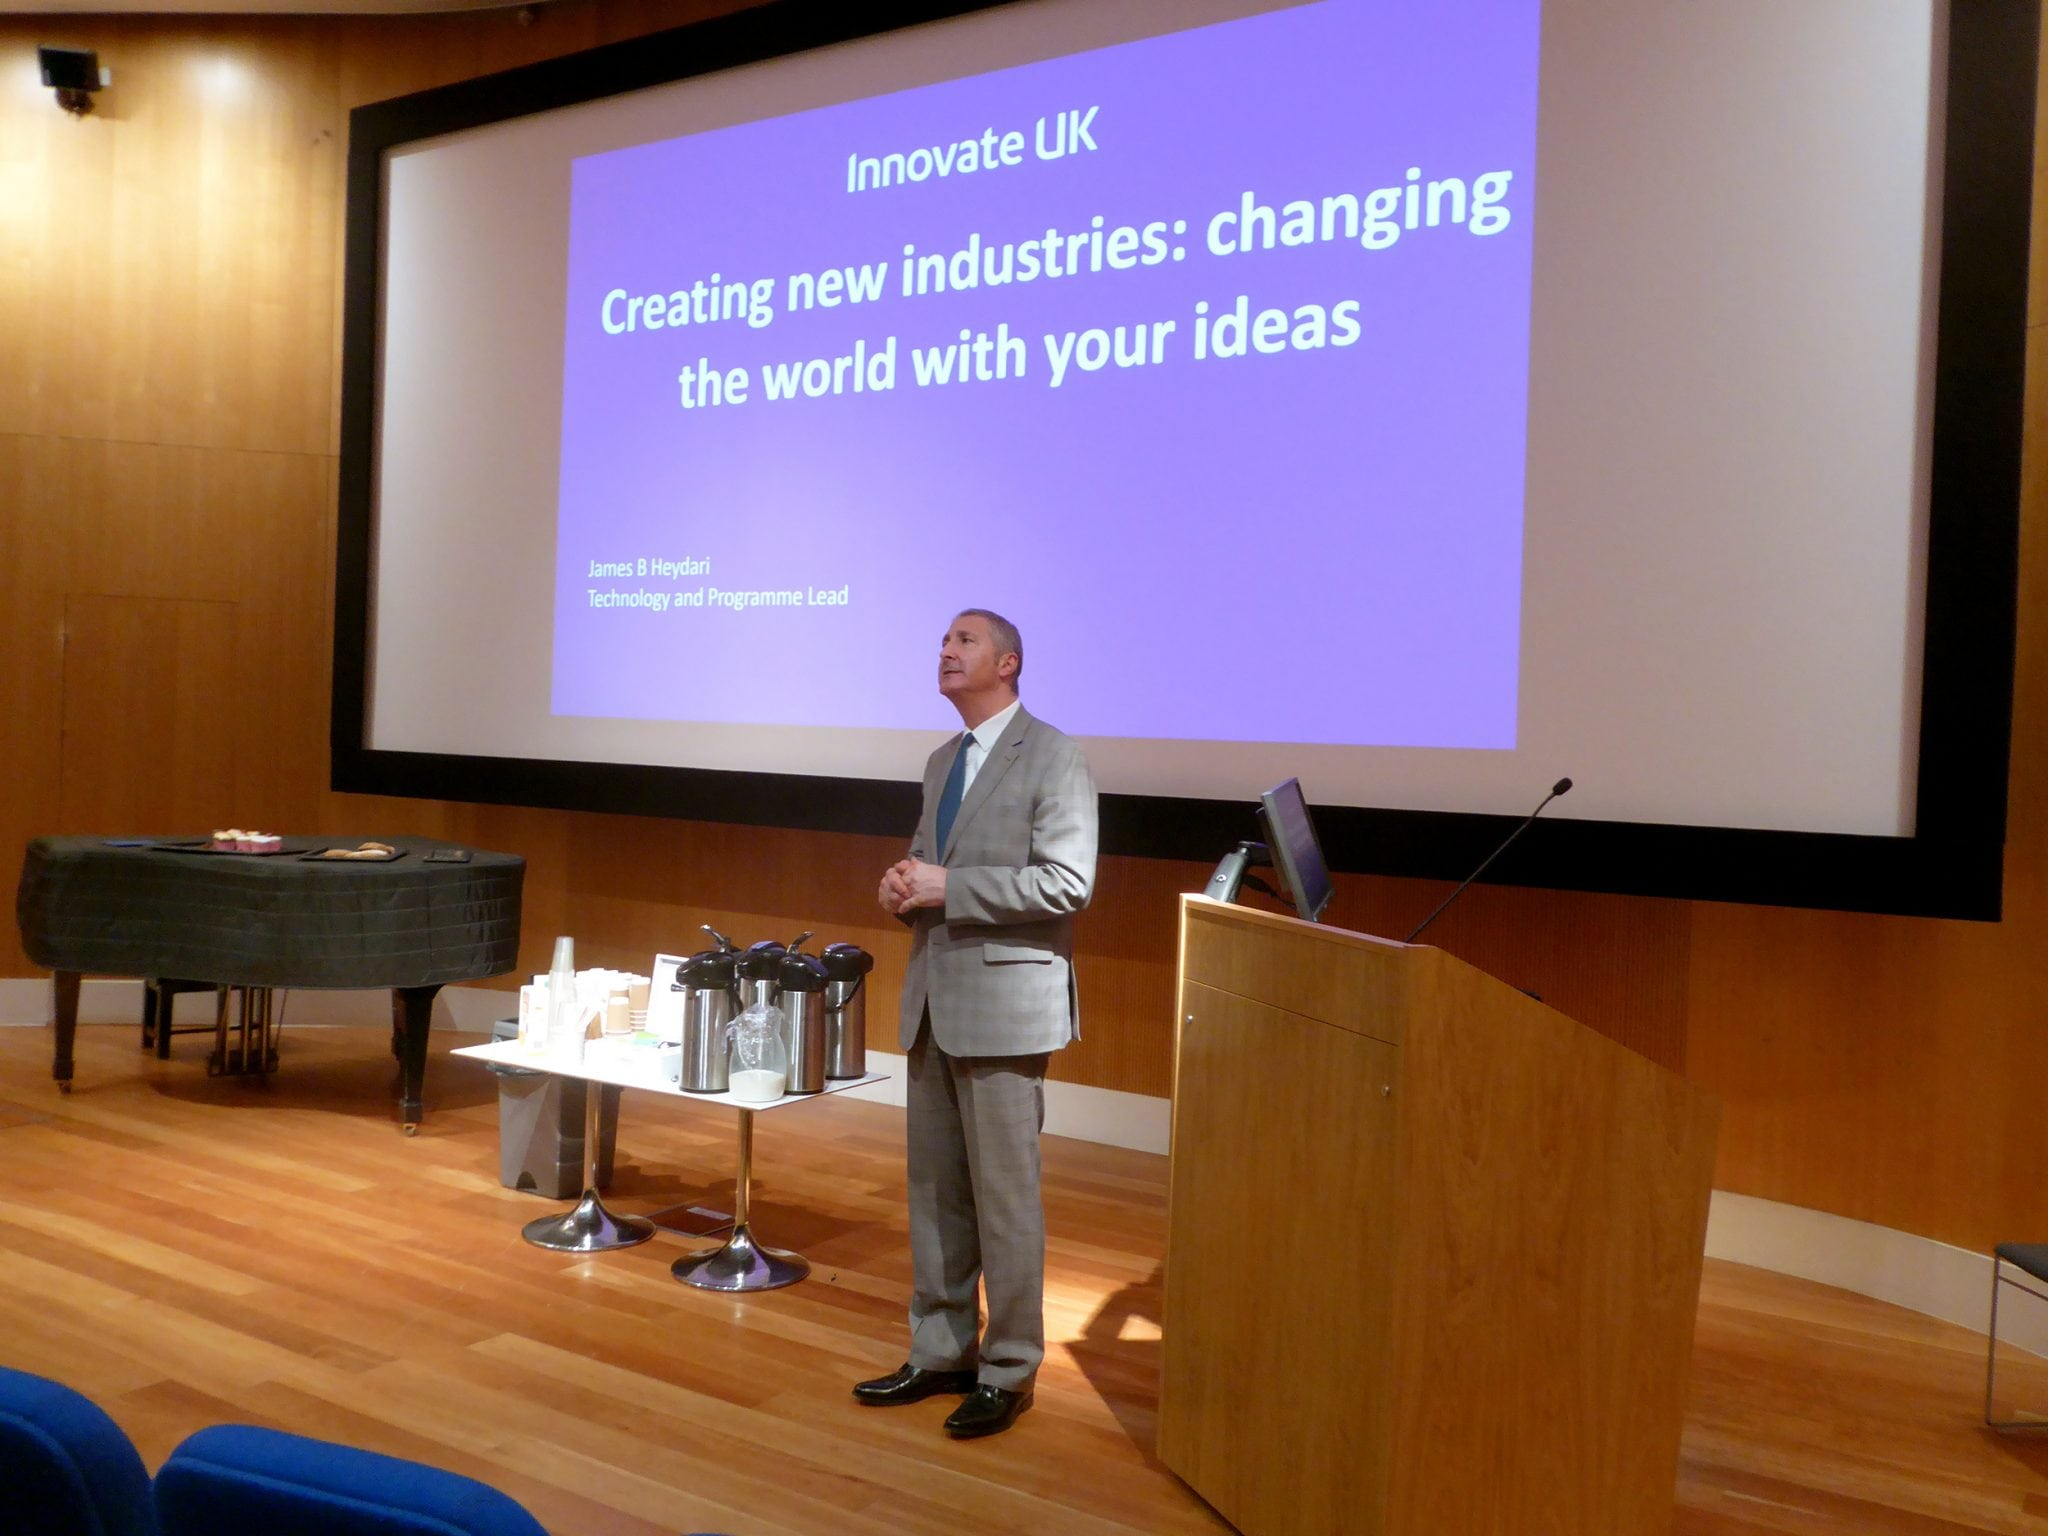 Innovate UK: Creating New Industries and Changing the World